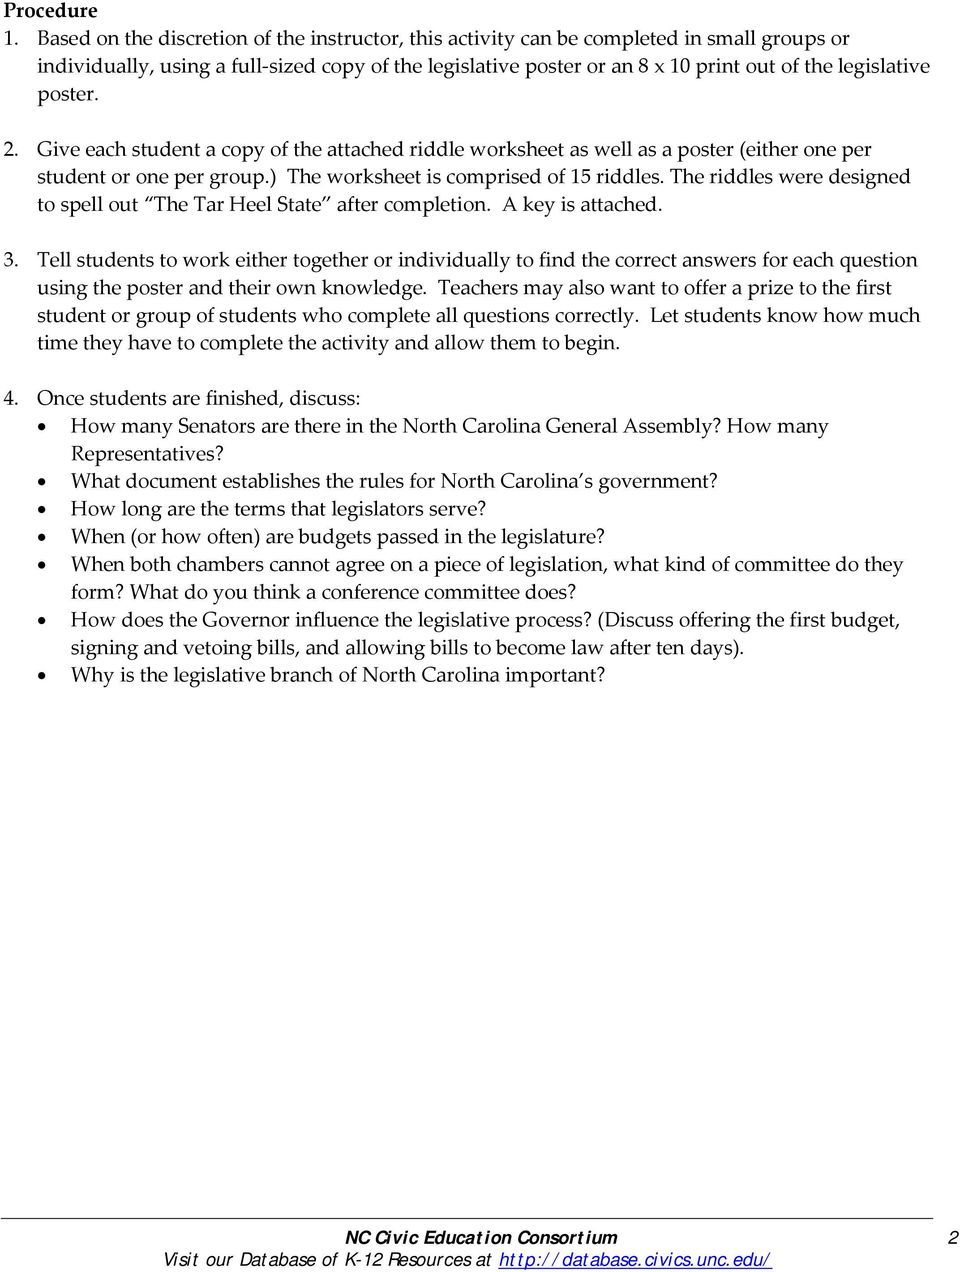 Free Worksheet Constitution Questions Worksheet north carolina legislative branch poster riddles pdf give each student a copy of the attached riddle worksheet as well